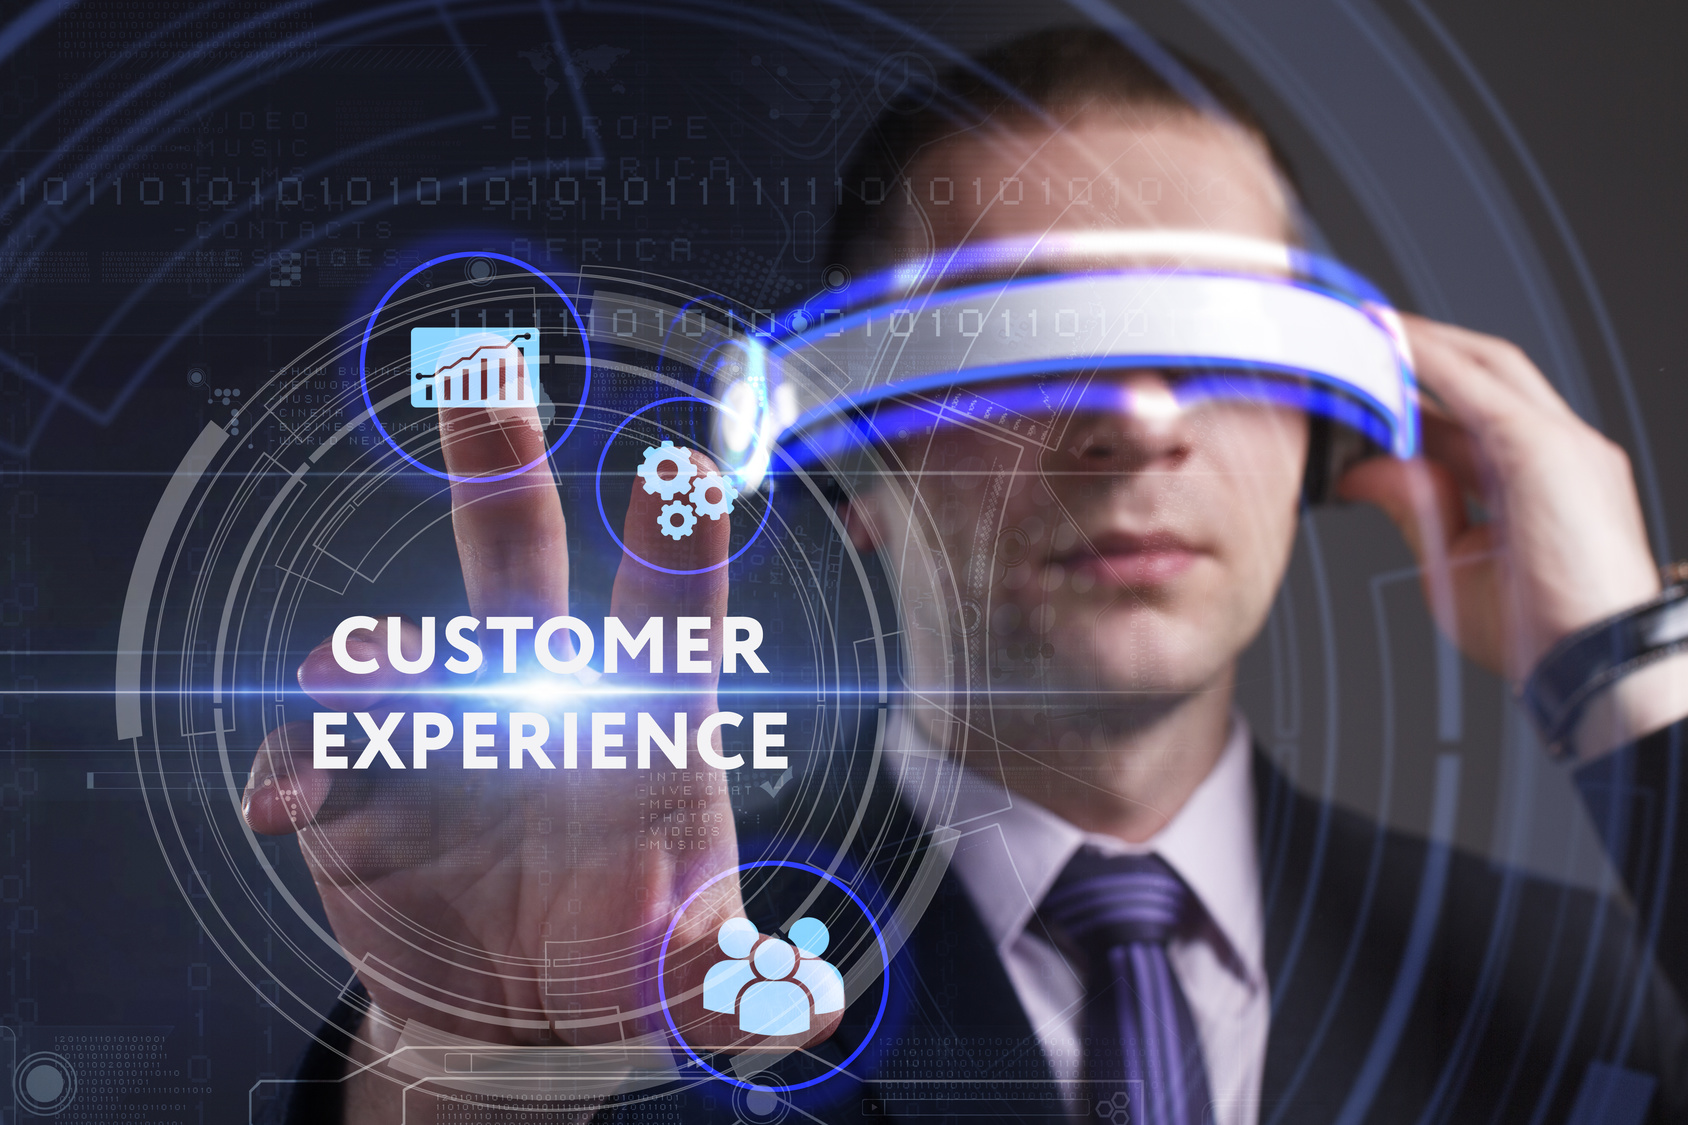 [Whitepaper] The AI-enhances customer experience